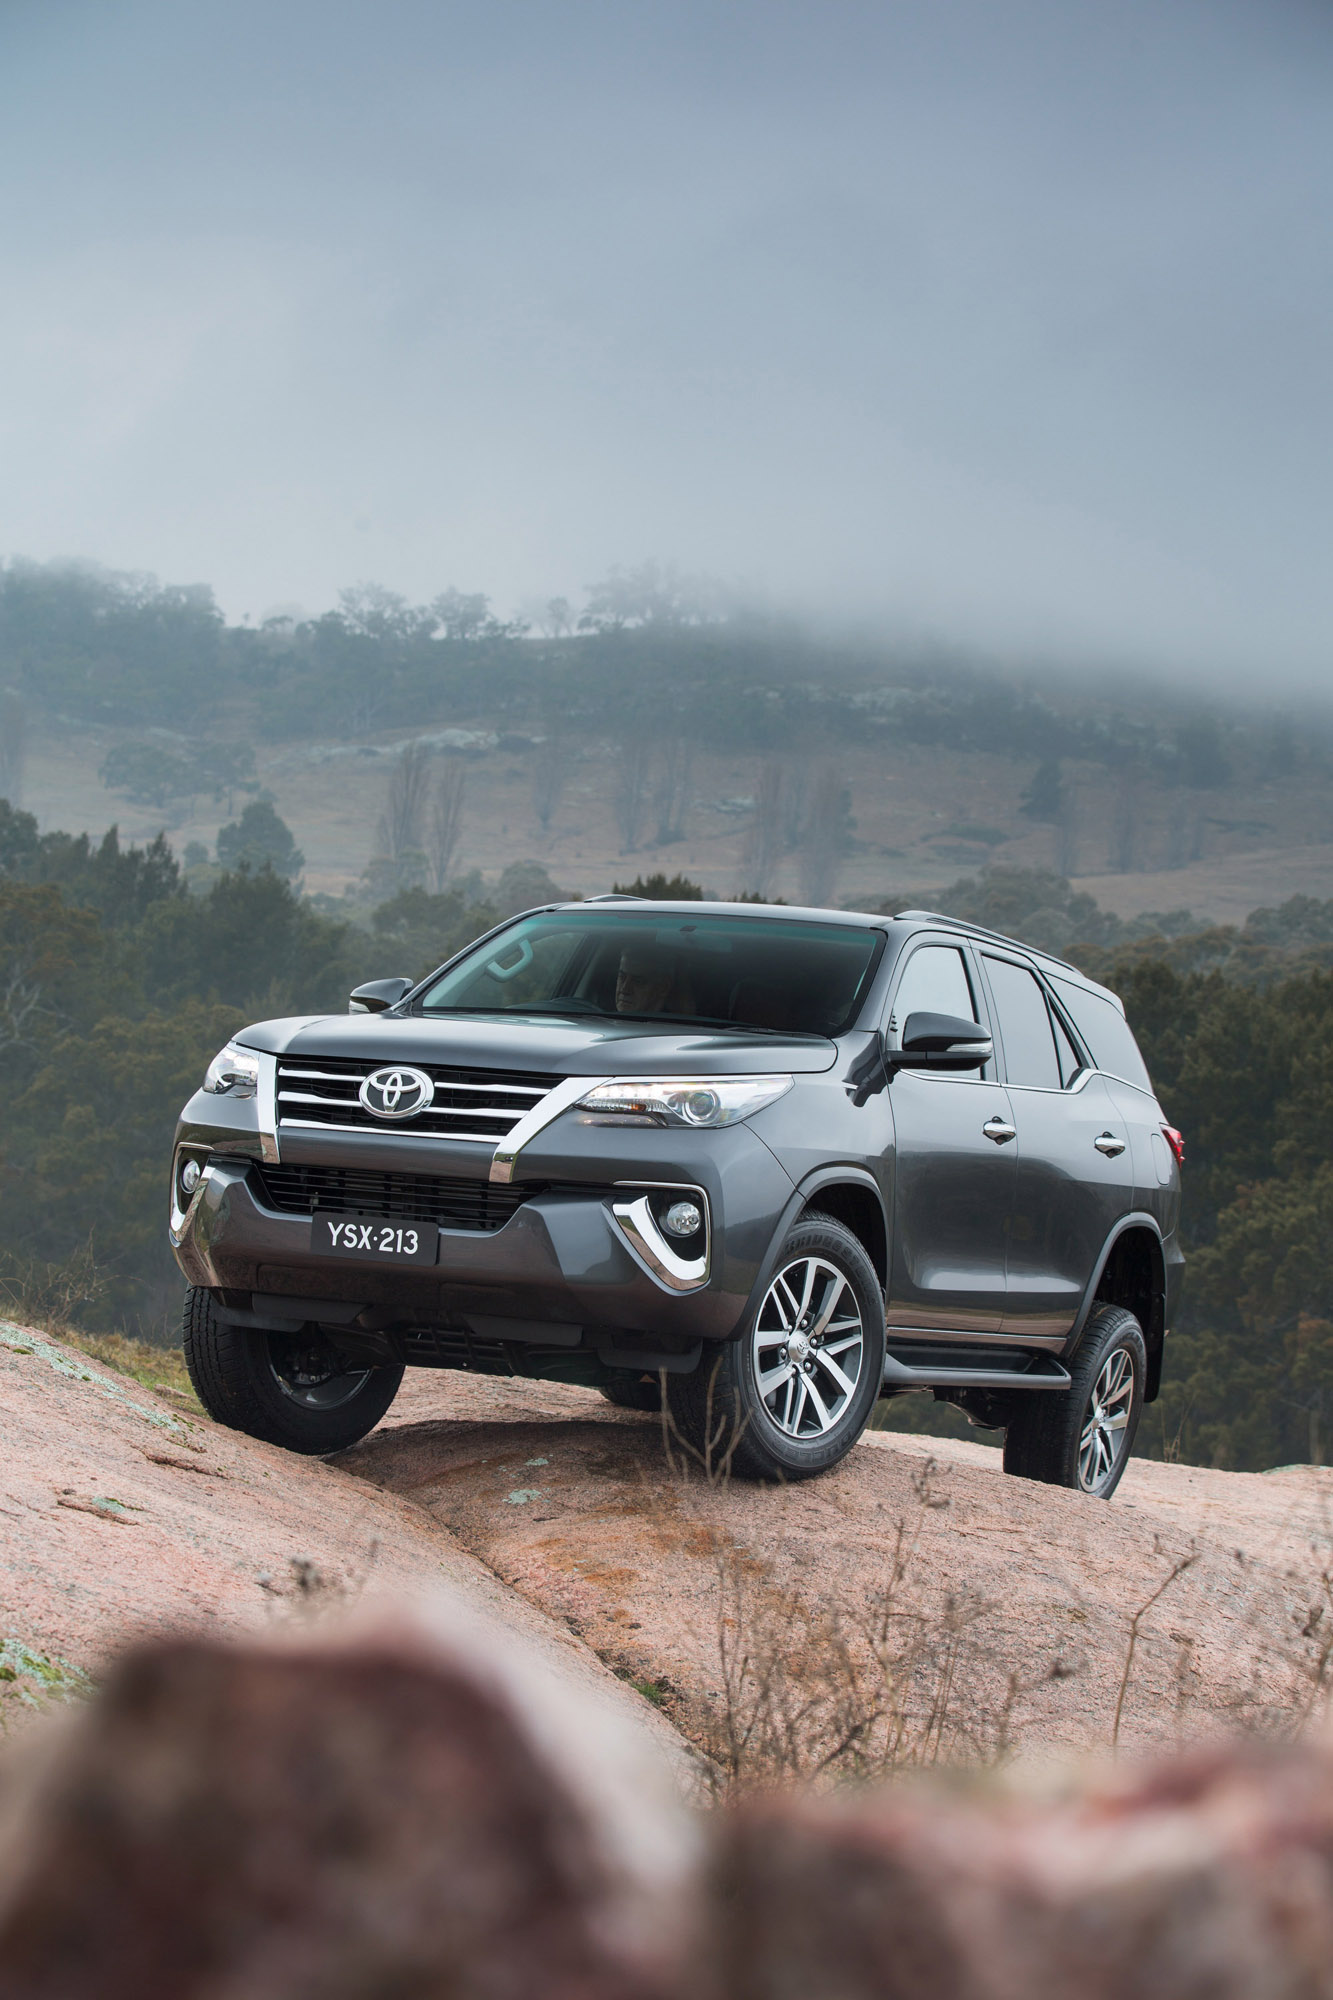 Great Car Wallpapers Toyota Fortuner Is The New Suv In Company S Line Up